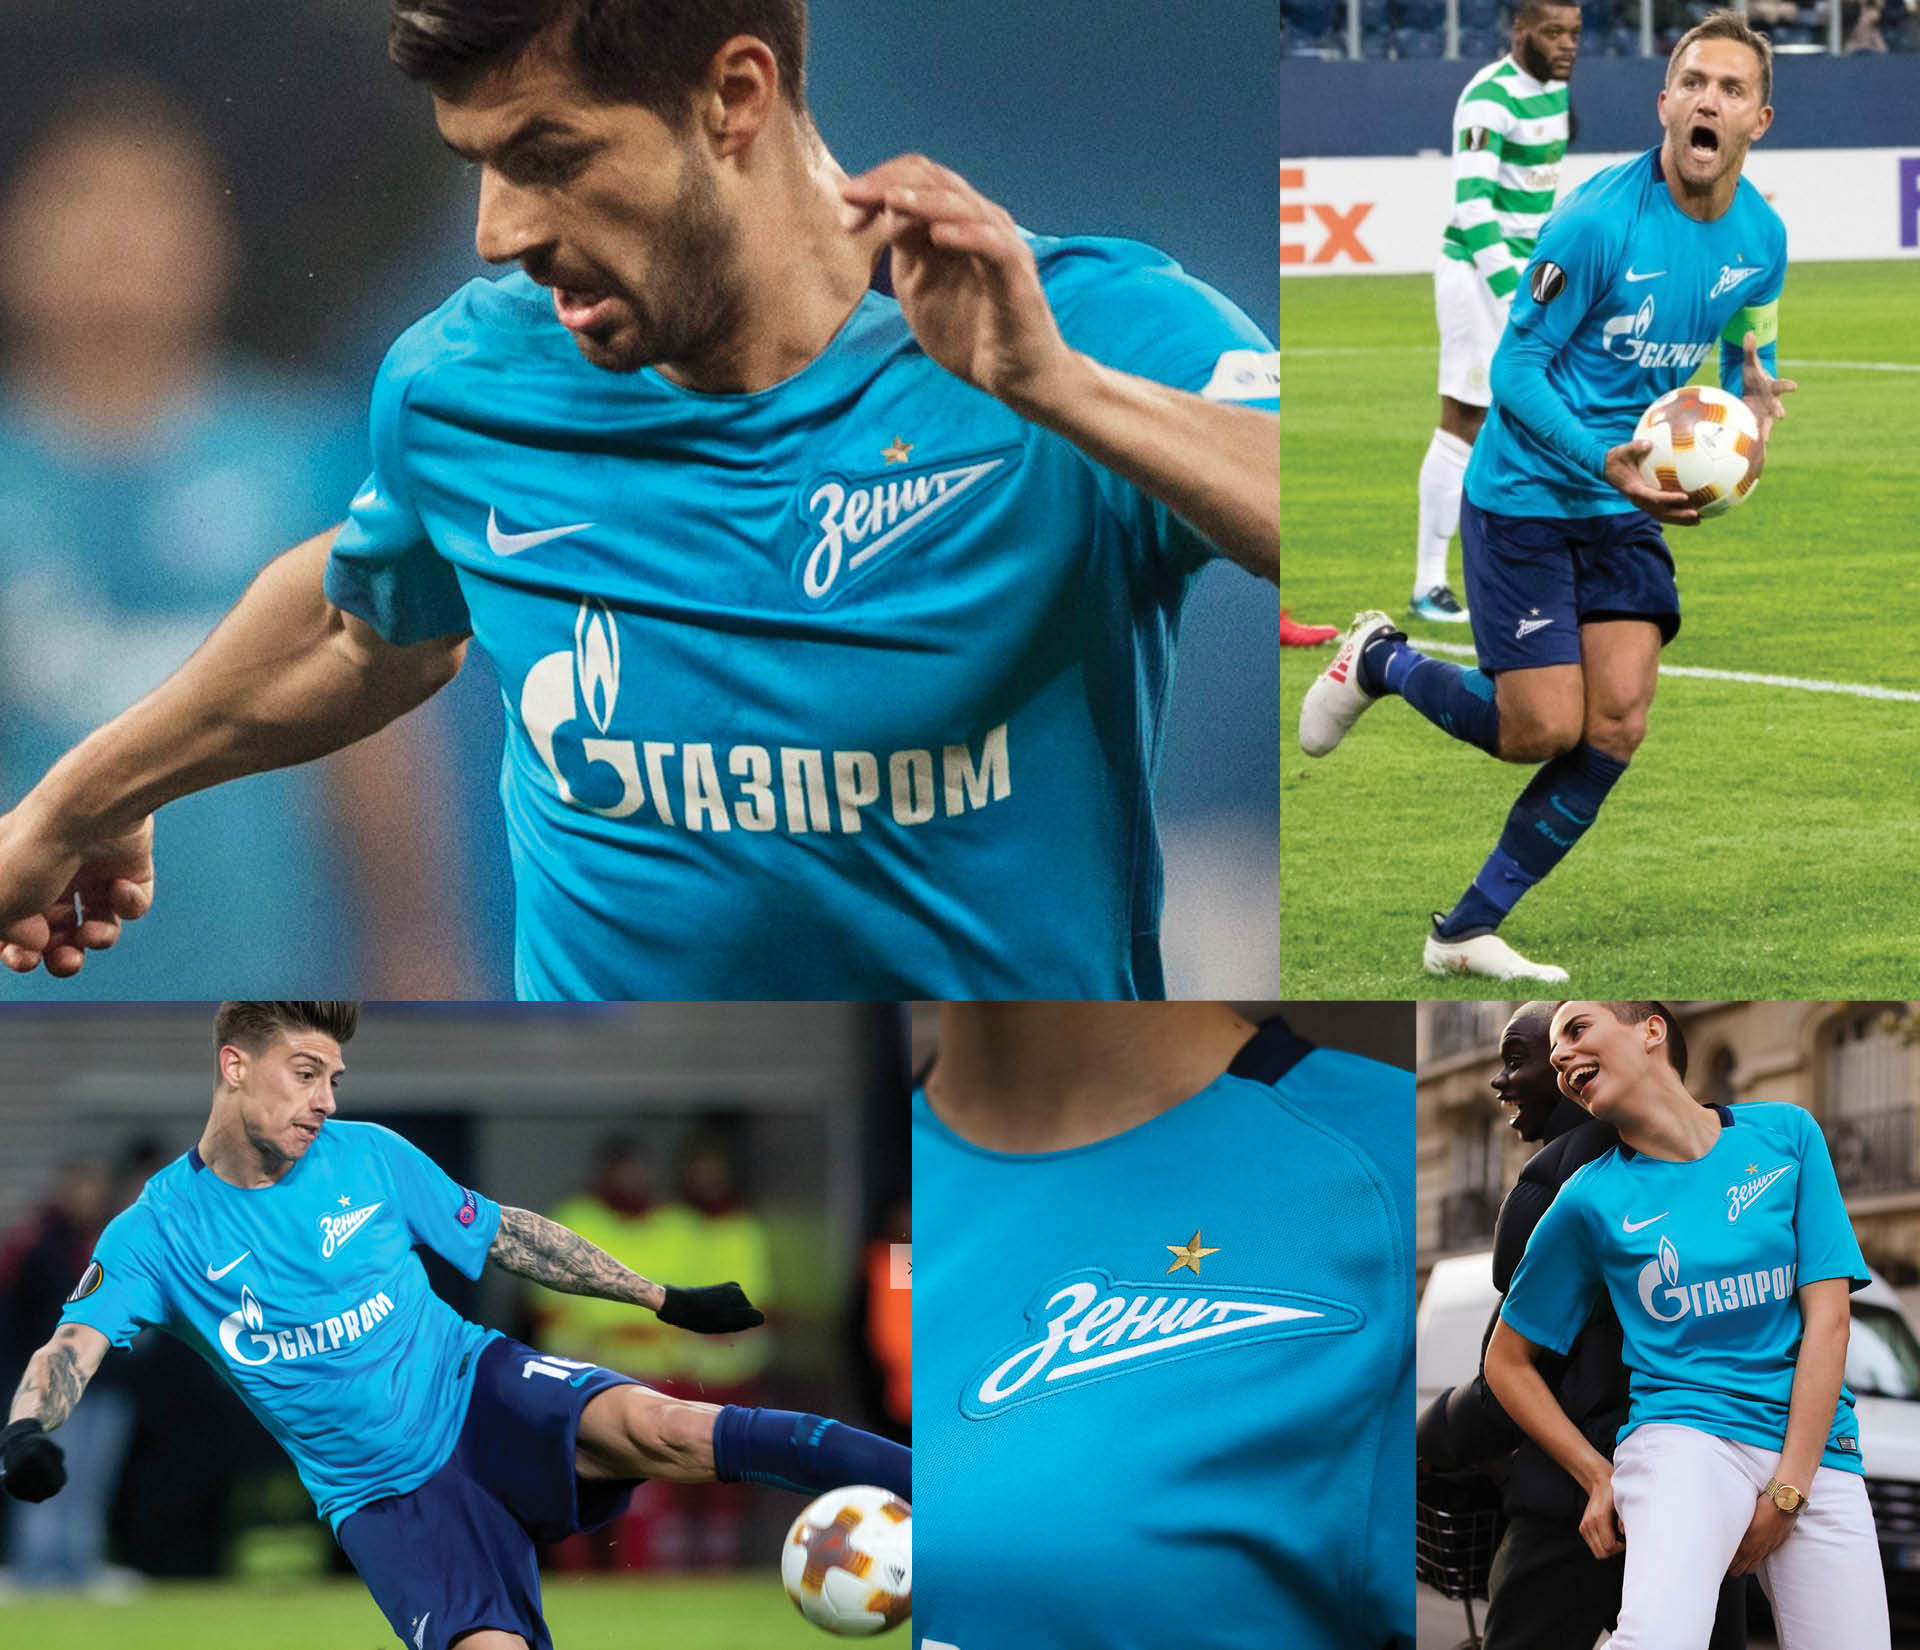 Zenit St Petersburg Nike Kit 2017 Jerseys, Matthew Wolff